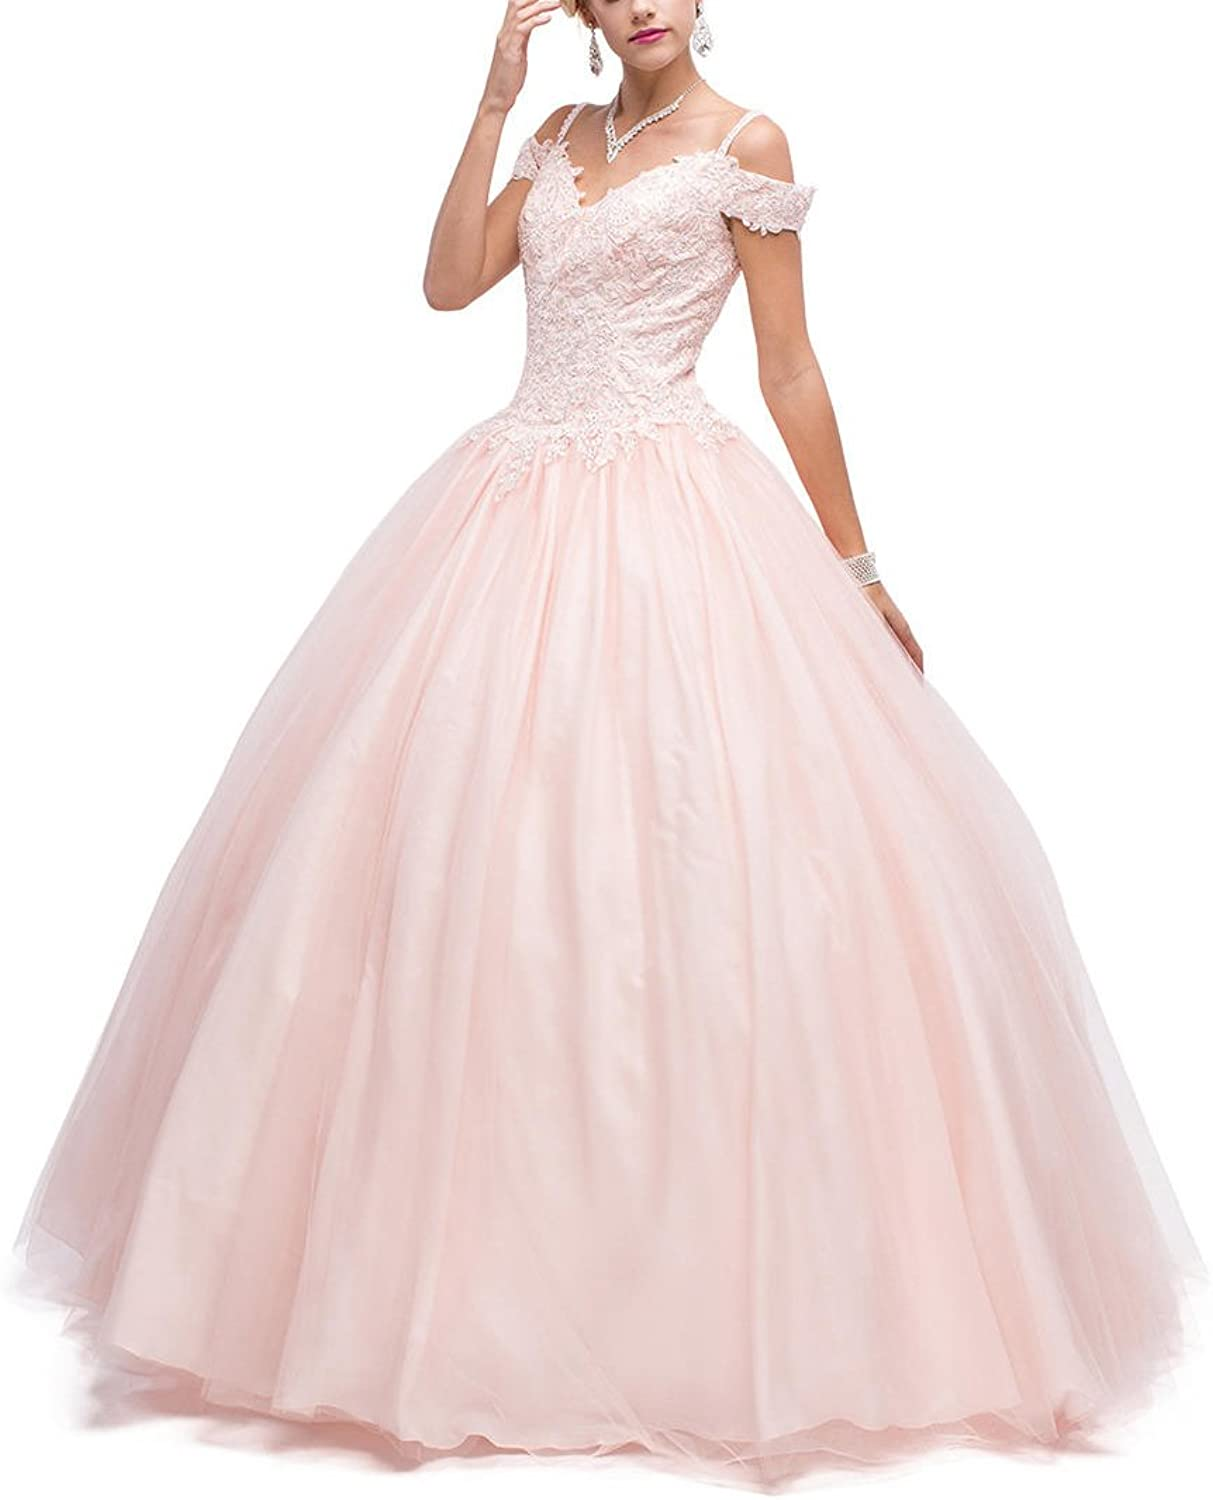 YSMei Women's Off Shoulder Wedding Prom Ball Gown Long Quinceanera Dresses YQC57